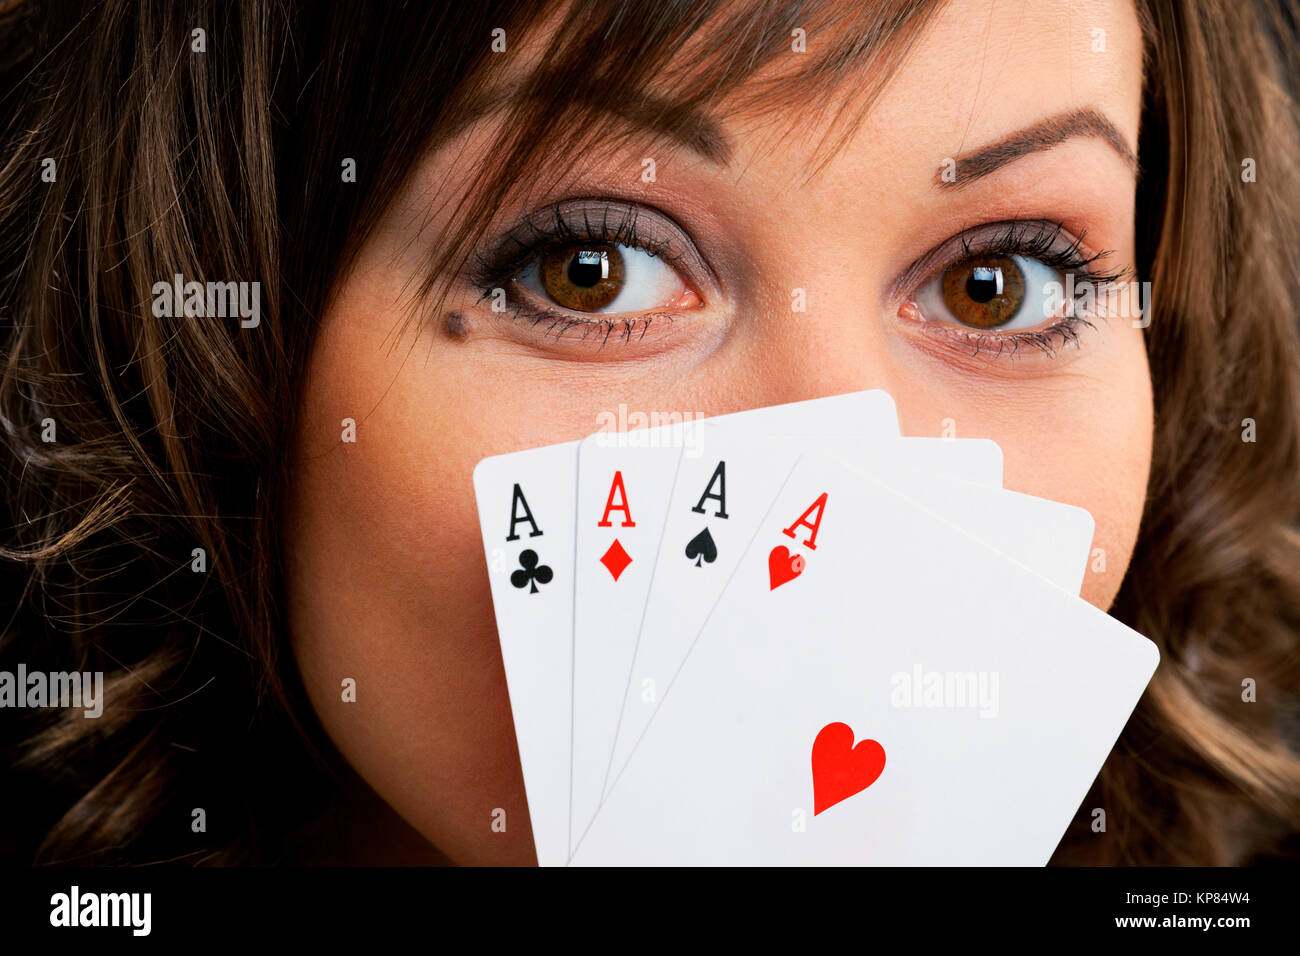 Young woman with cards - Stock Image